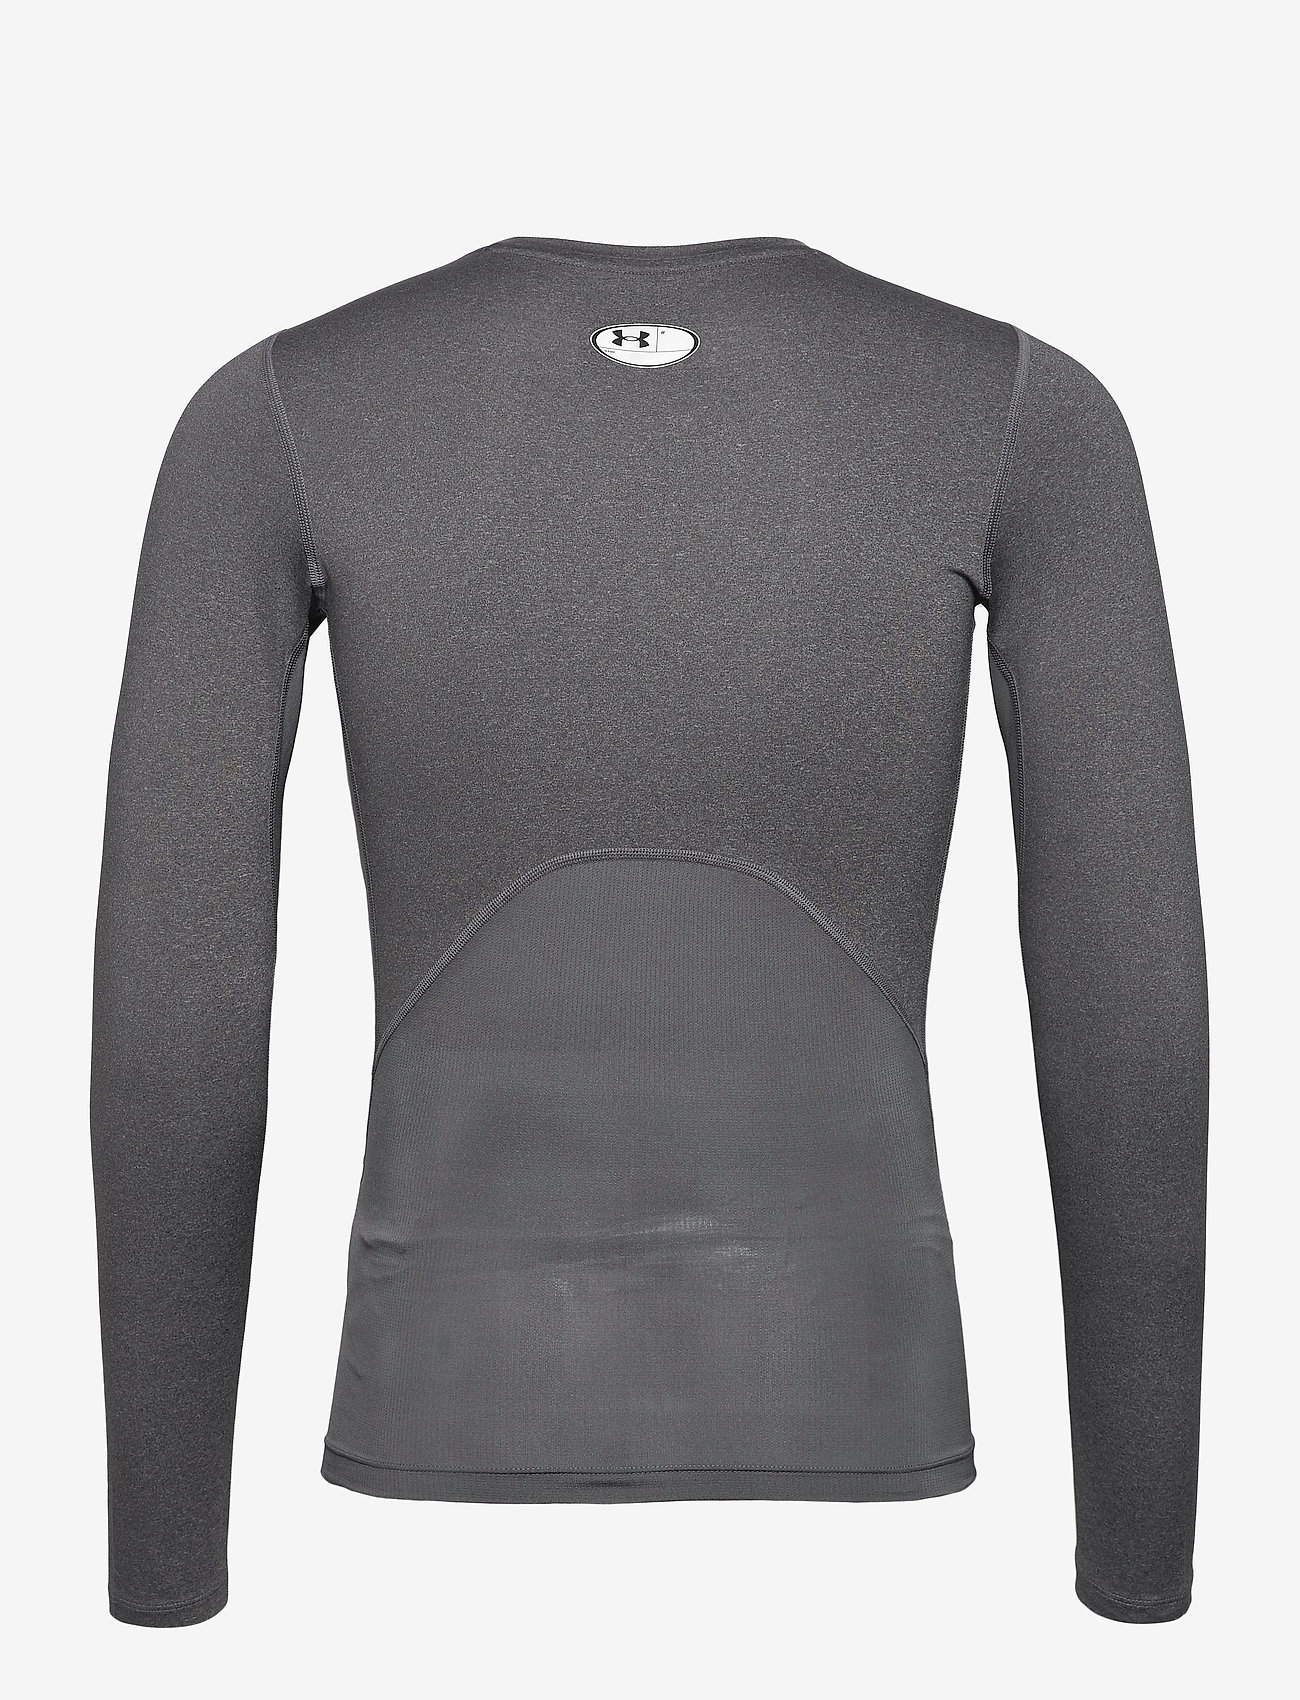 Under Armour - UA HG Armour Comp LS - base layer tops - carbon heather - 1